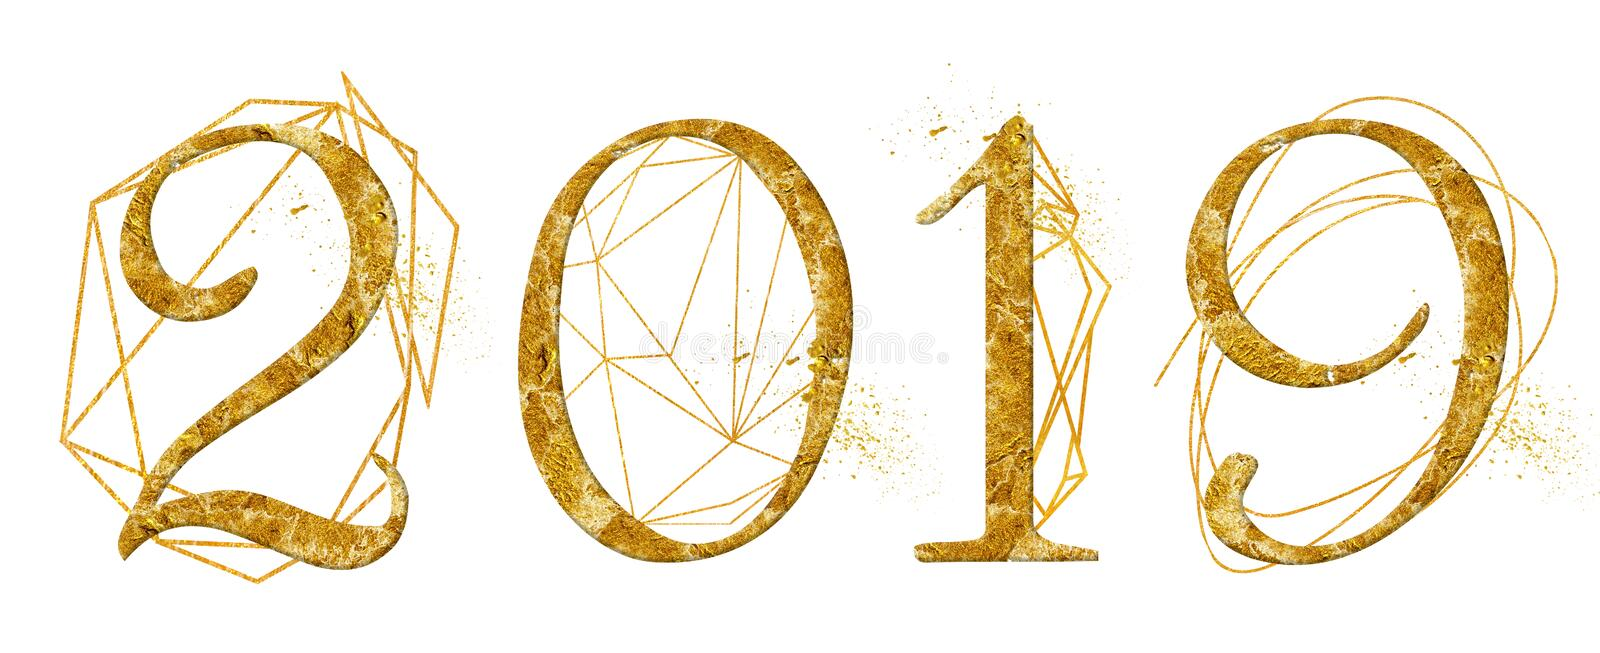 Year 2019 golden number design with gold geometric shape crystal watercolor new year sign stock image